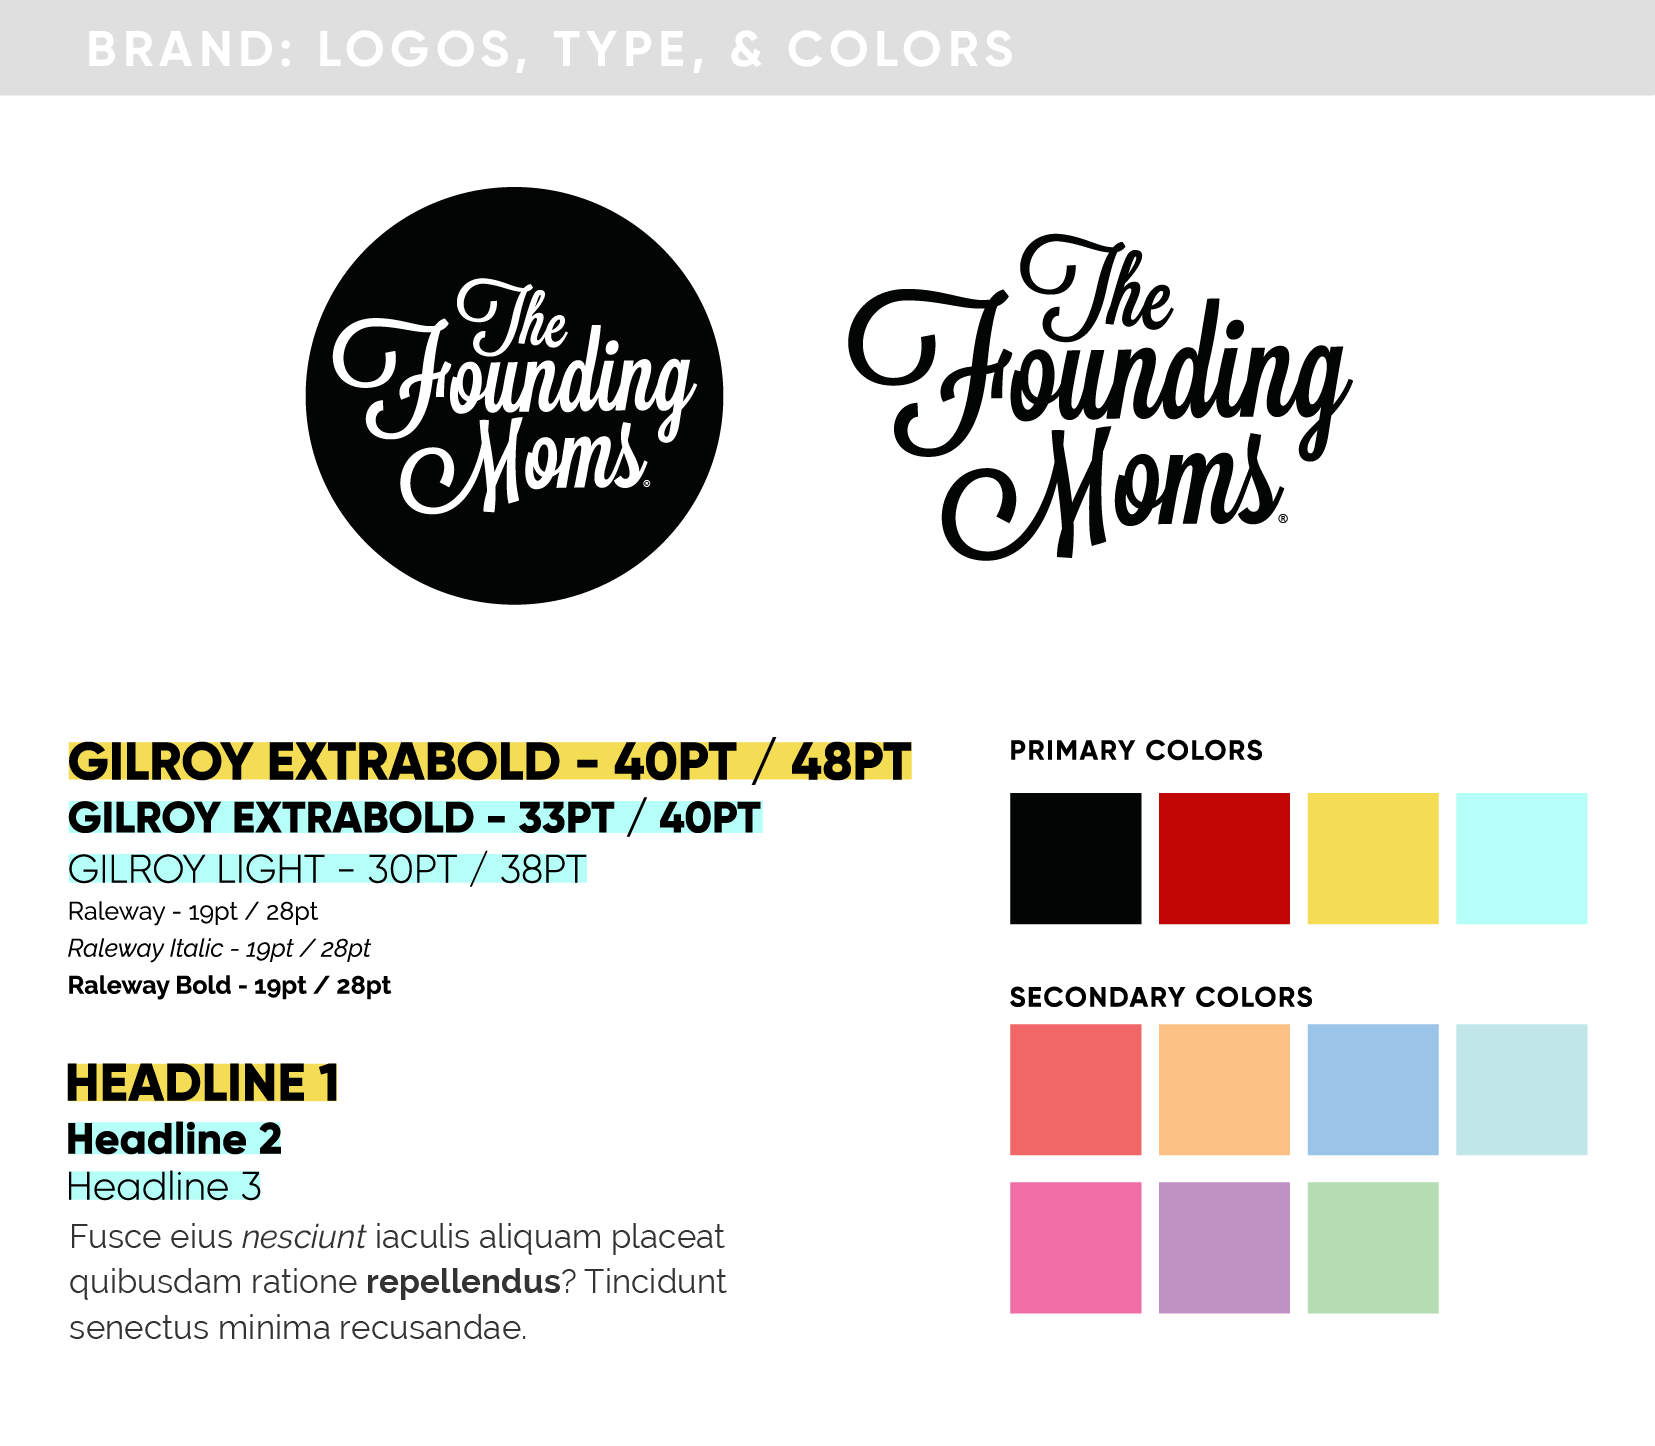 The Founding Moms Brand Guide